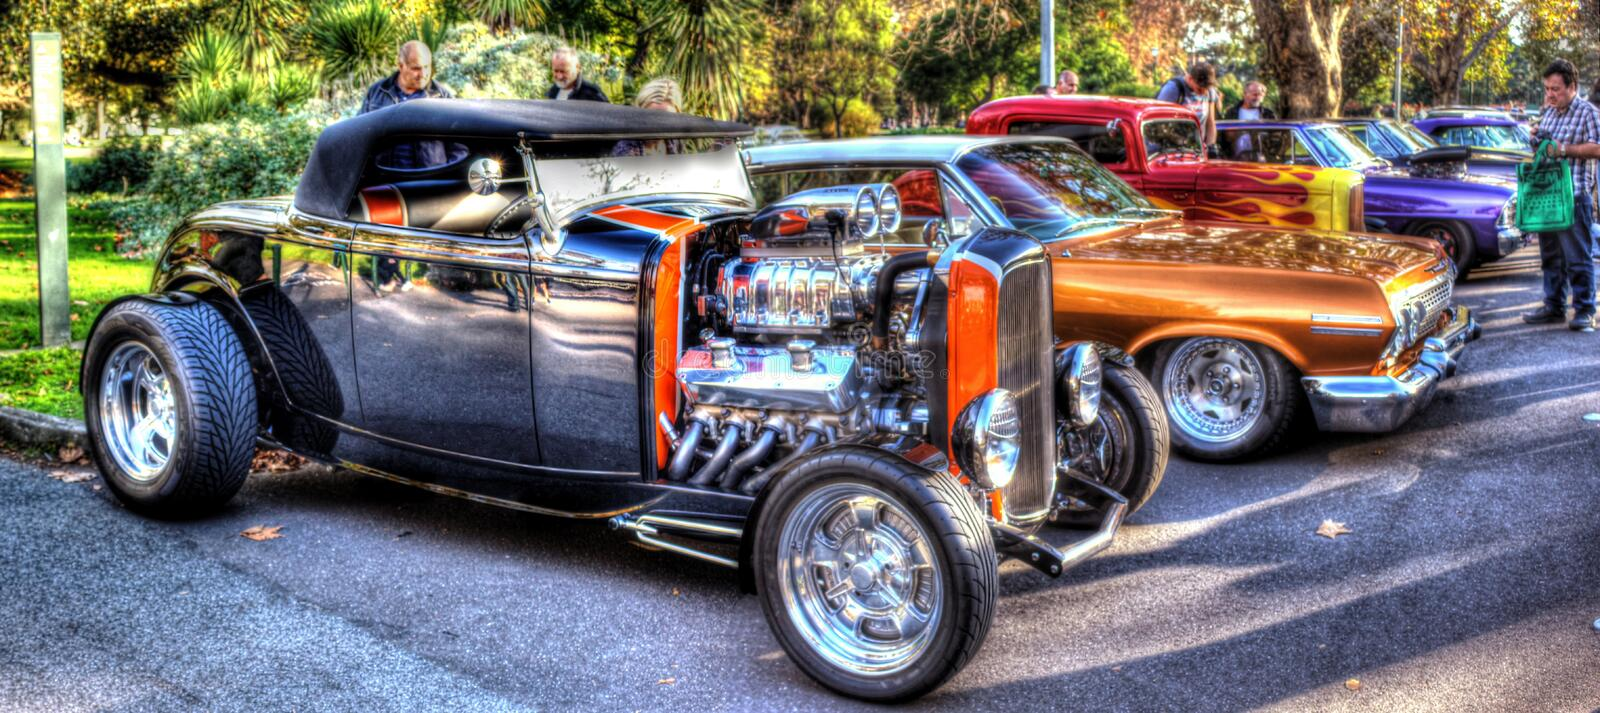 Hot rods on display stock photos